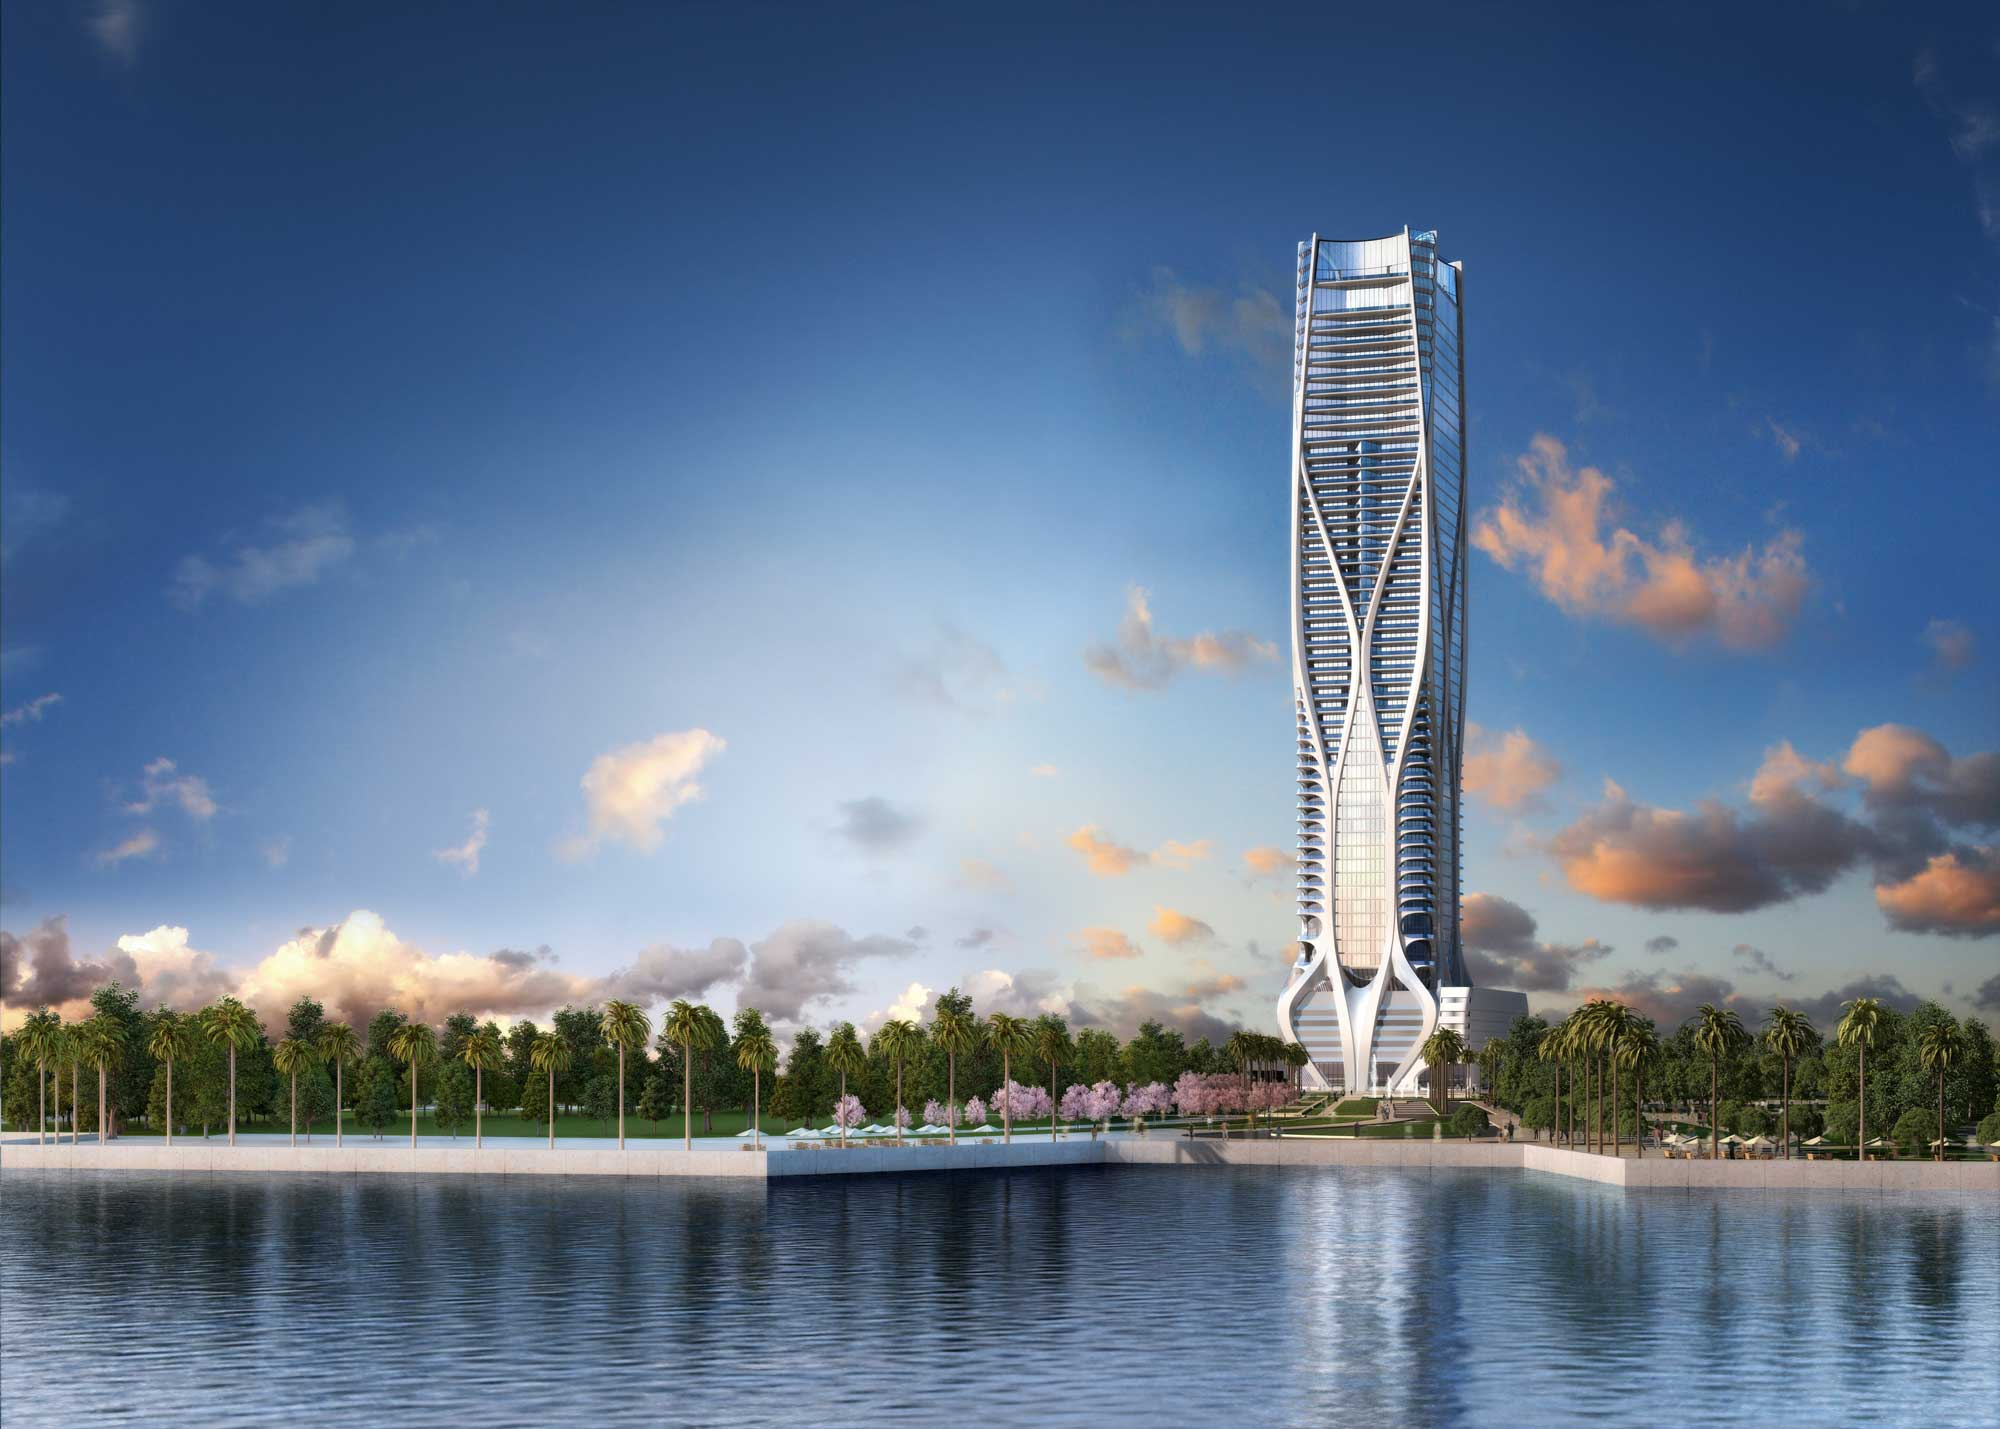 An exciting and unrivaleddevelopment project, The  1000 Museum  is a luxury signature residential tower by Pritzker architecture prize-winner and a world renowned international architect Zaha Hadid.